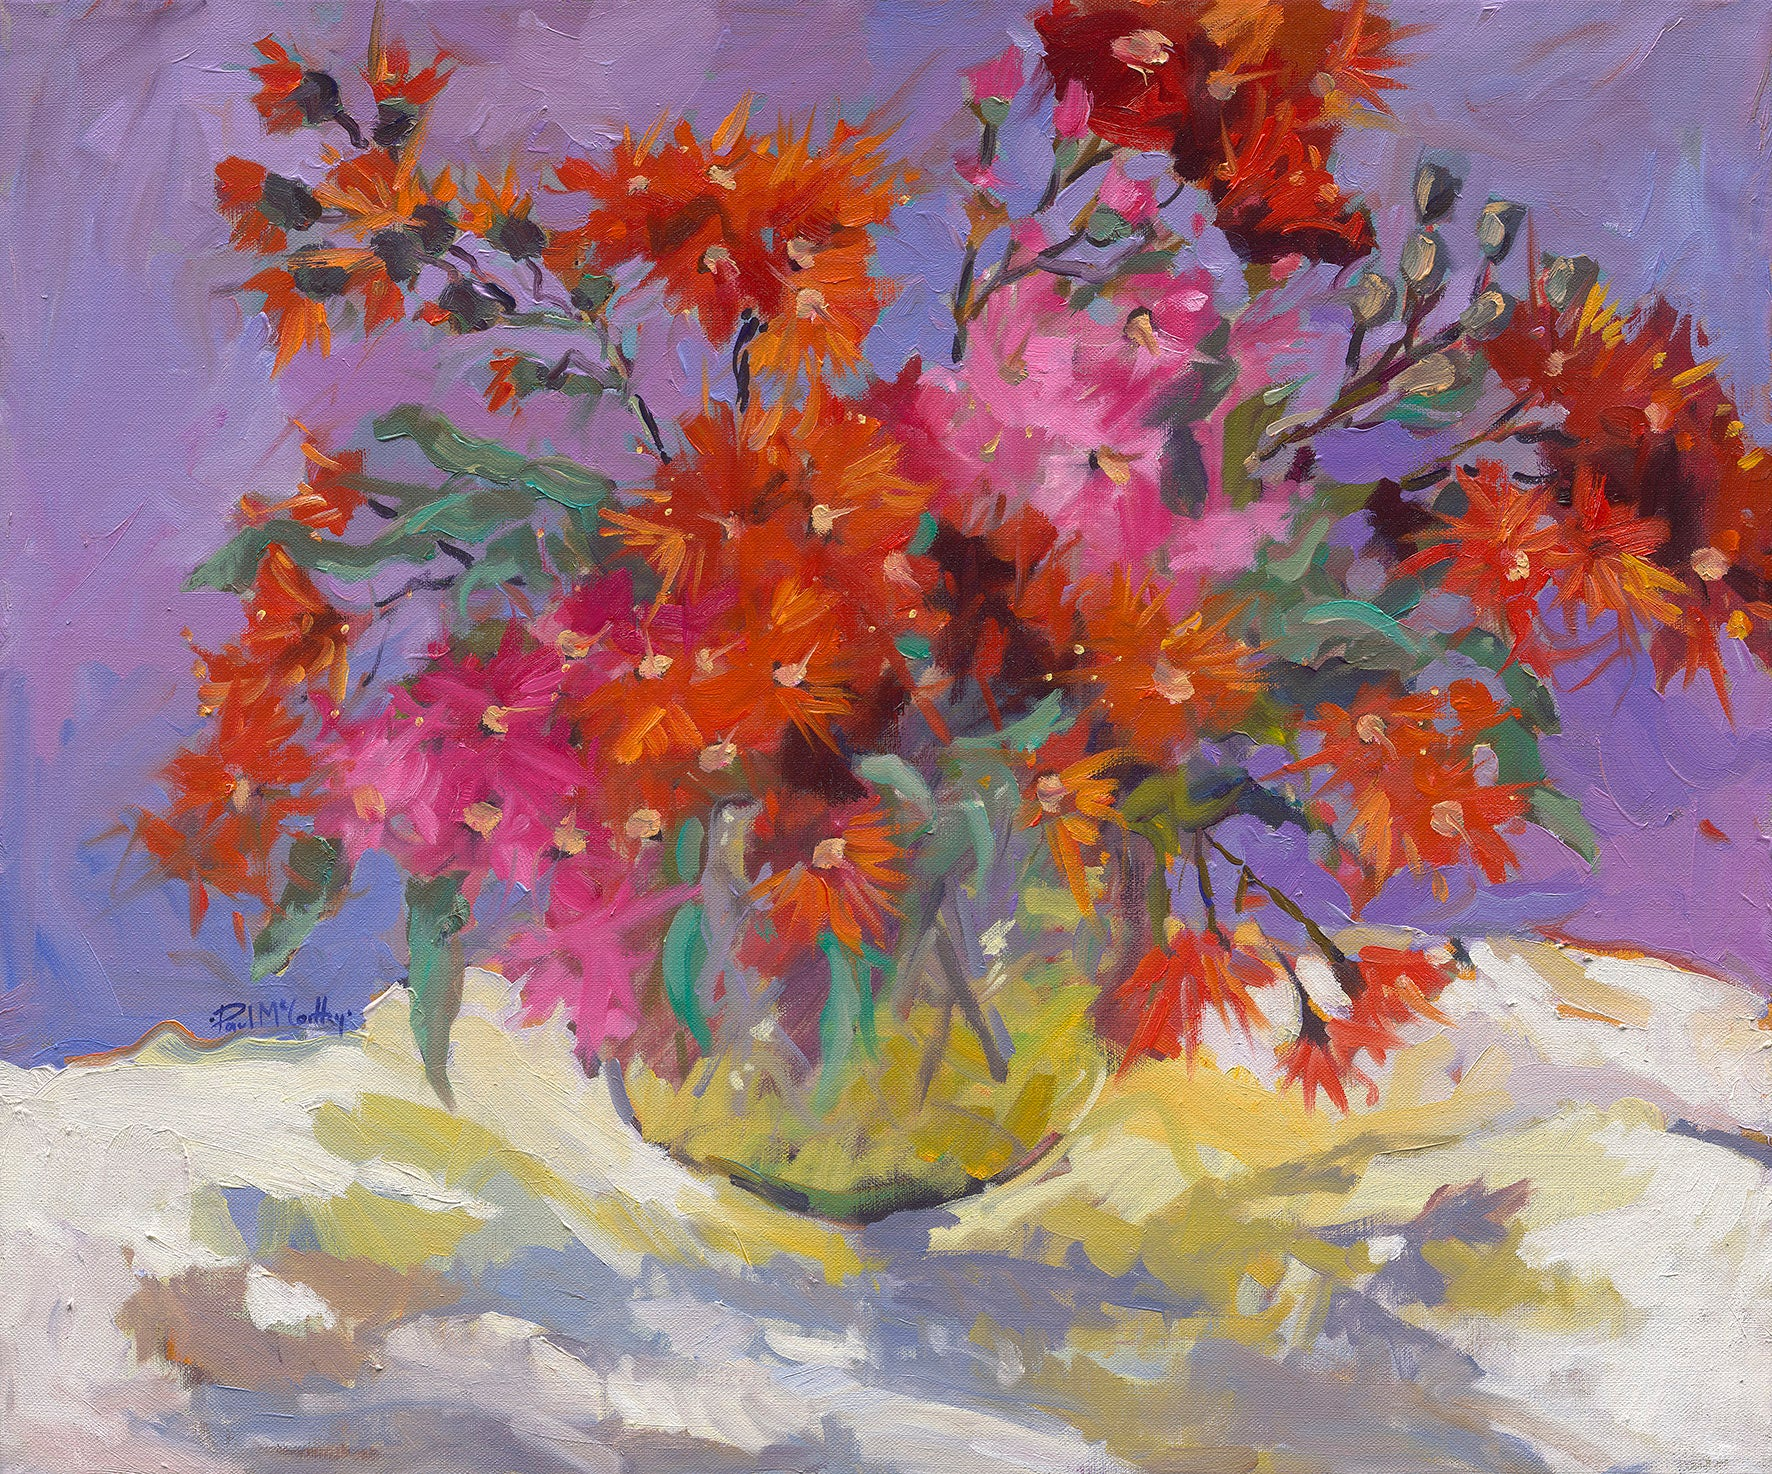 Gum Blossom - Still Life Painting by Paul McCarthy